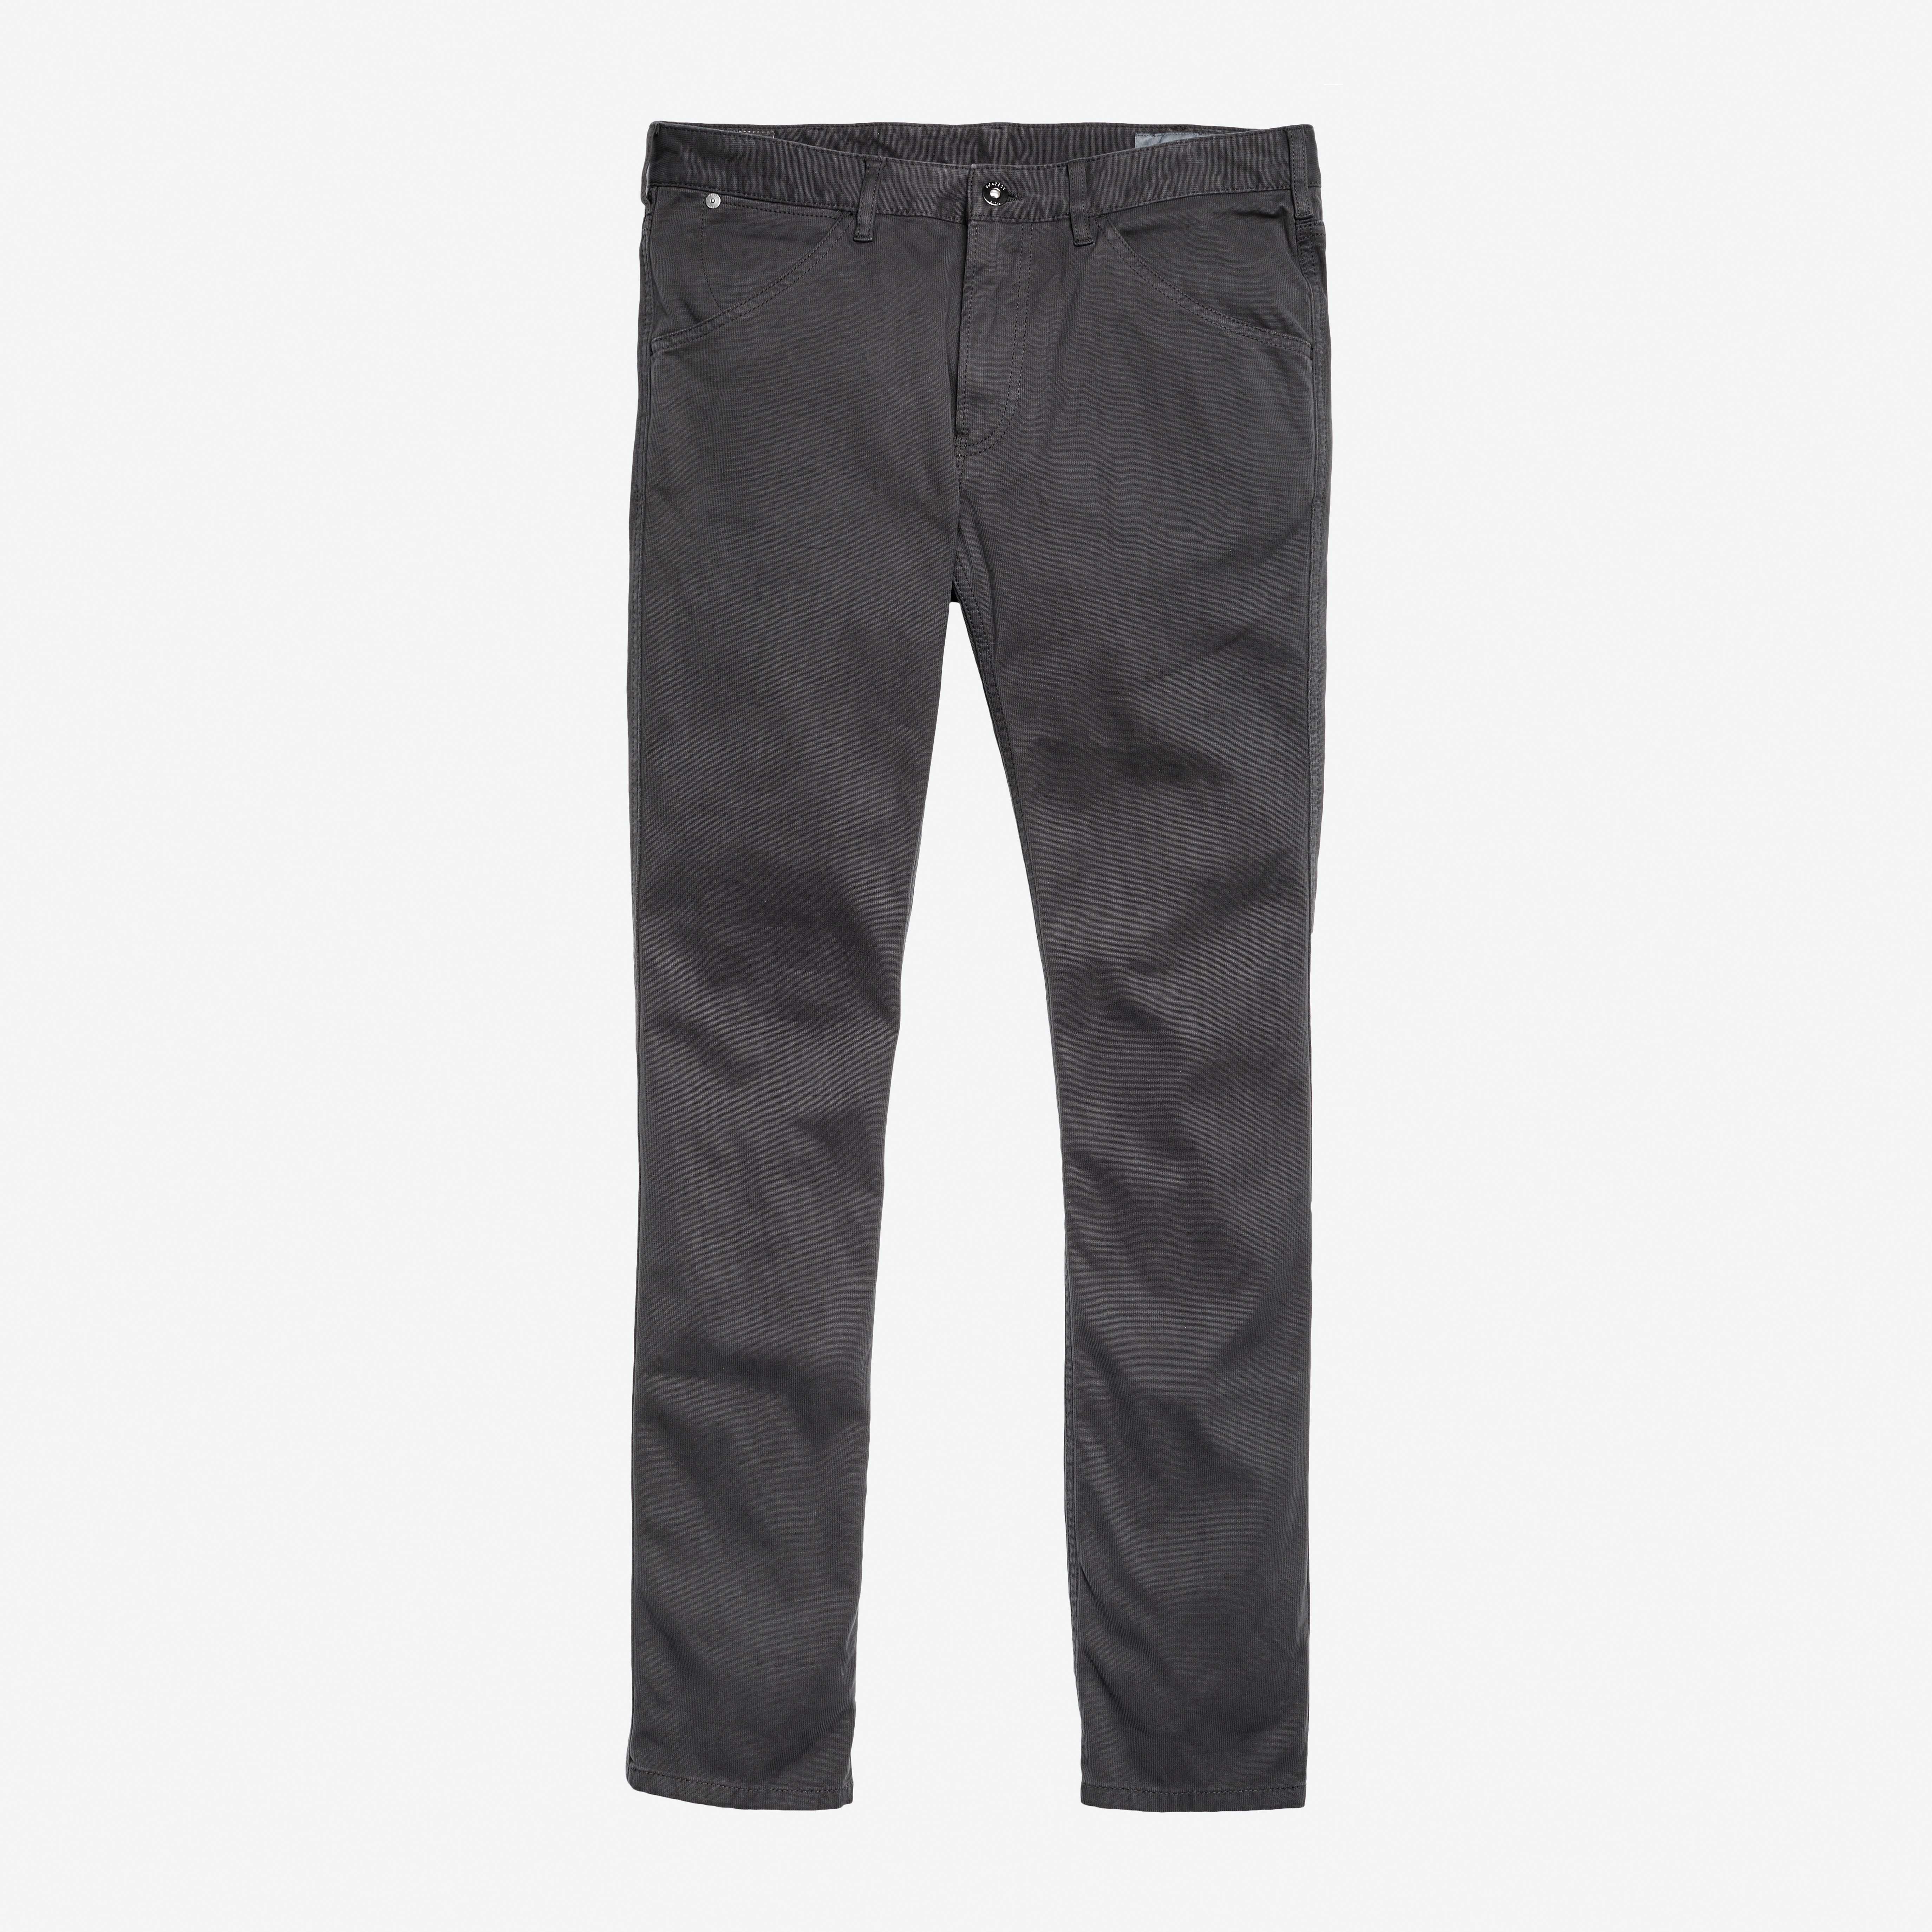 5-Pocket Bedford Pants